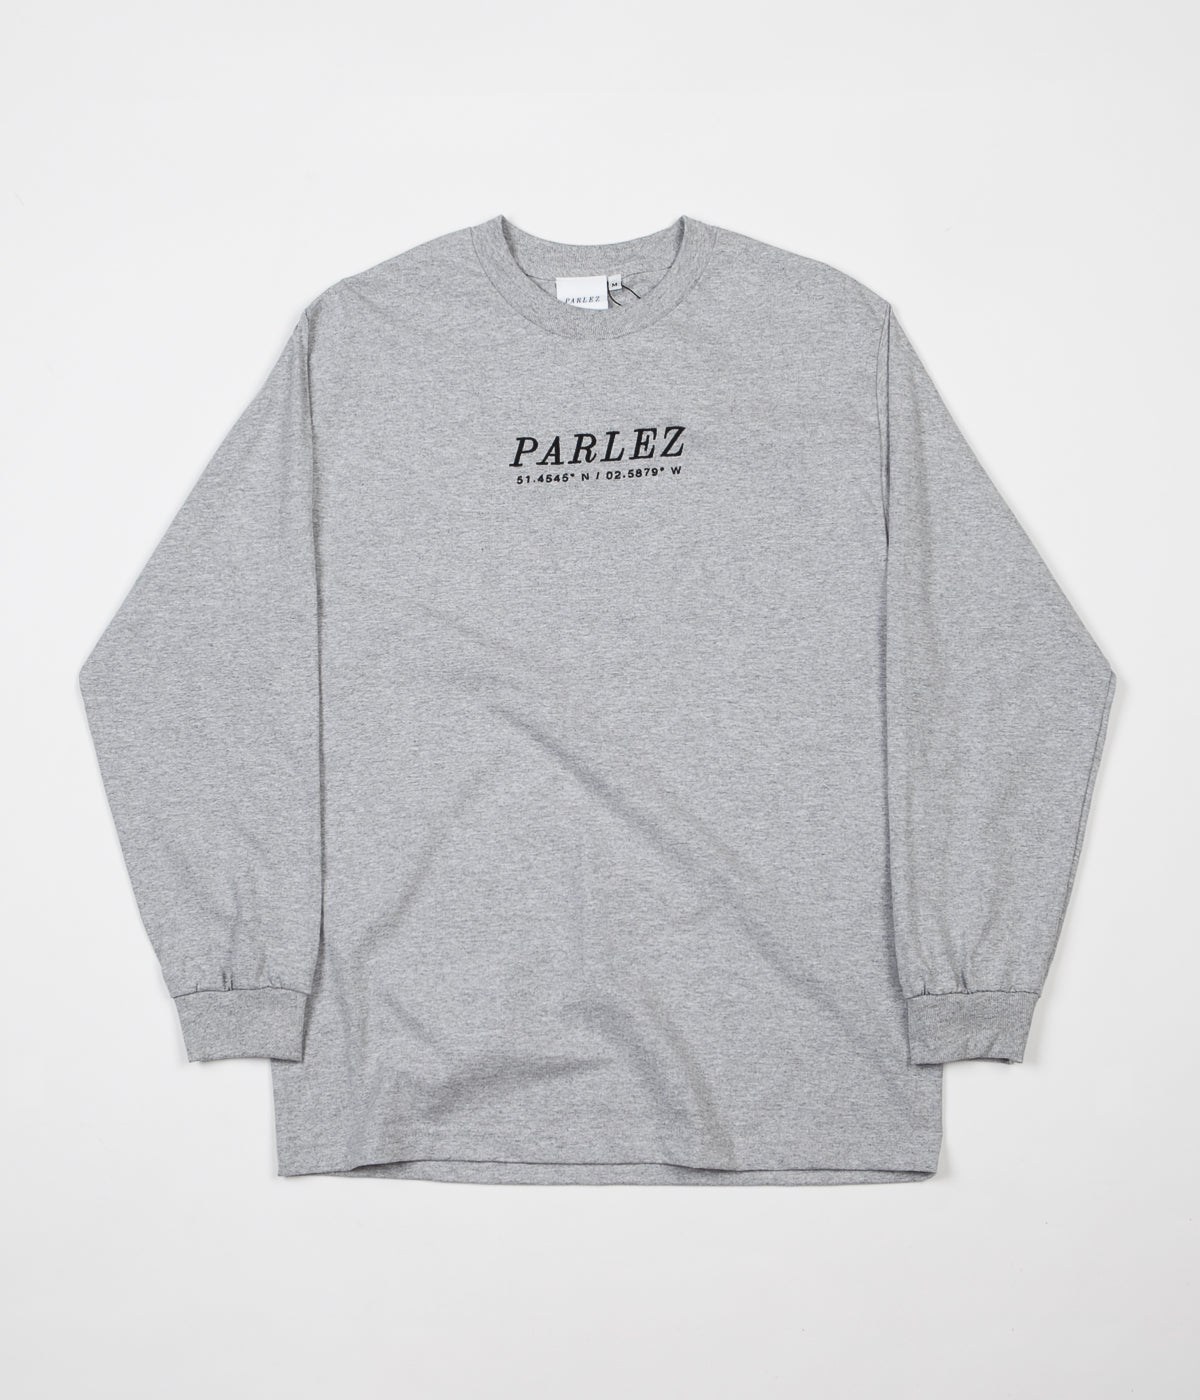 Parlez High Long Sleeve T-Shirt - Heather